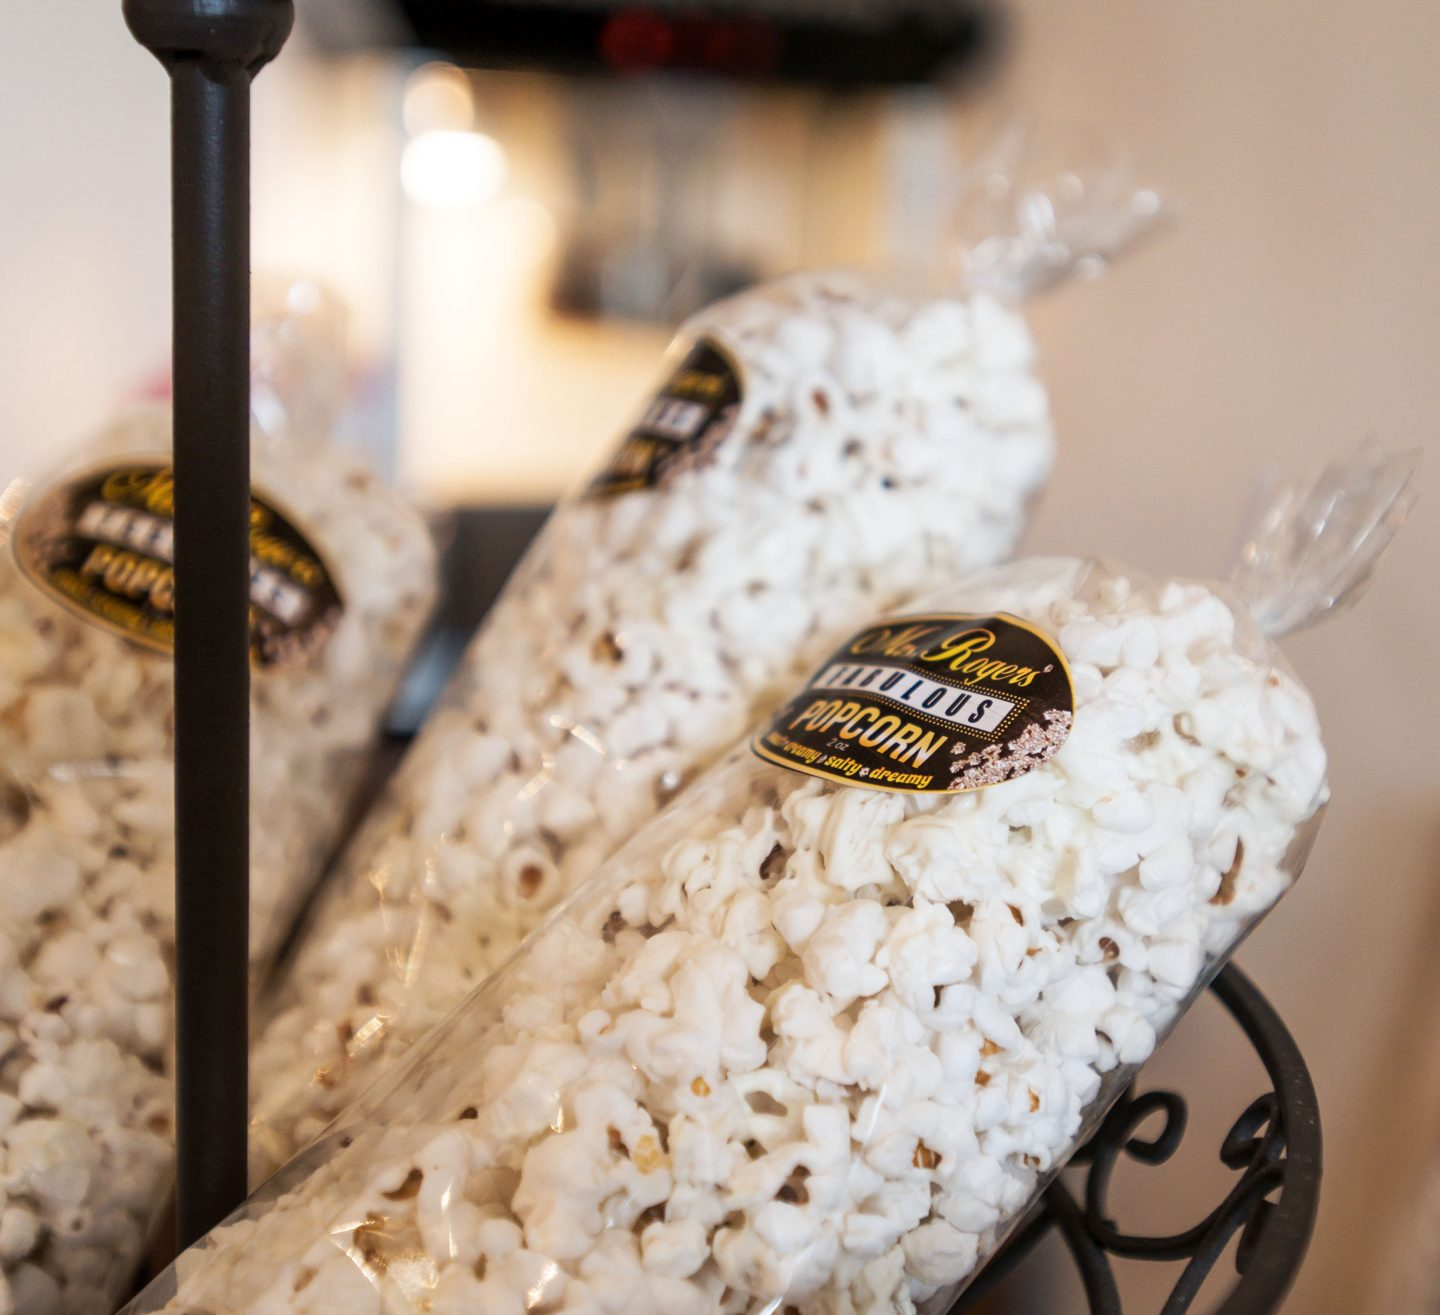 Bags of white chocolate popcorn